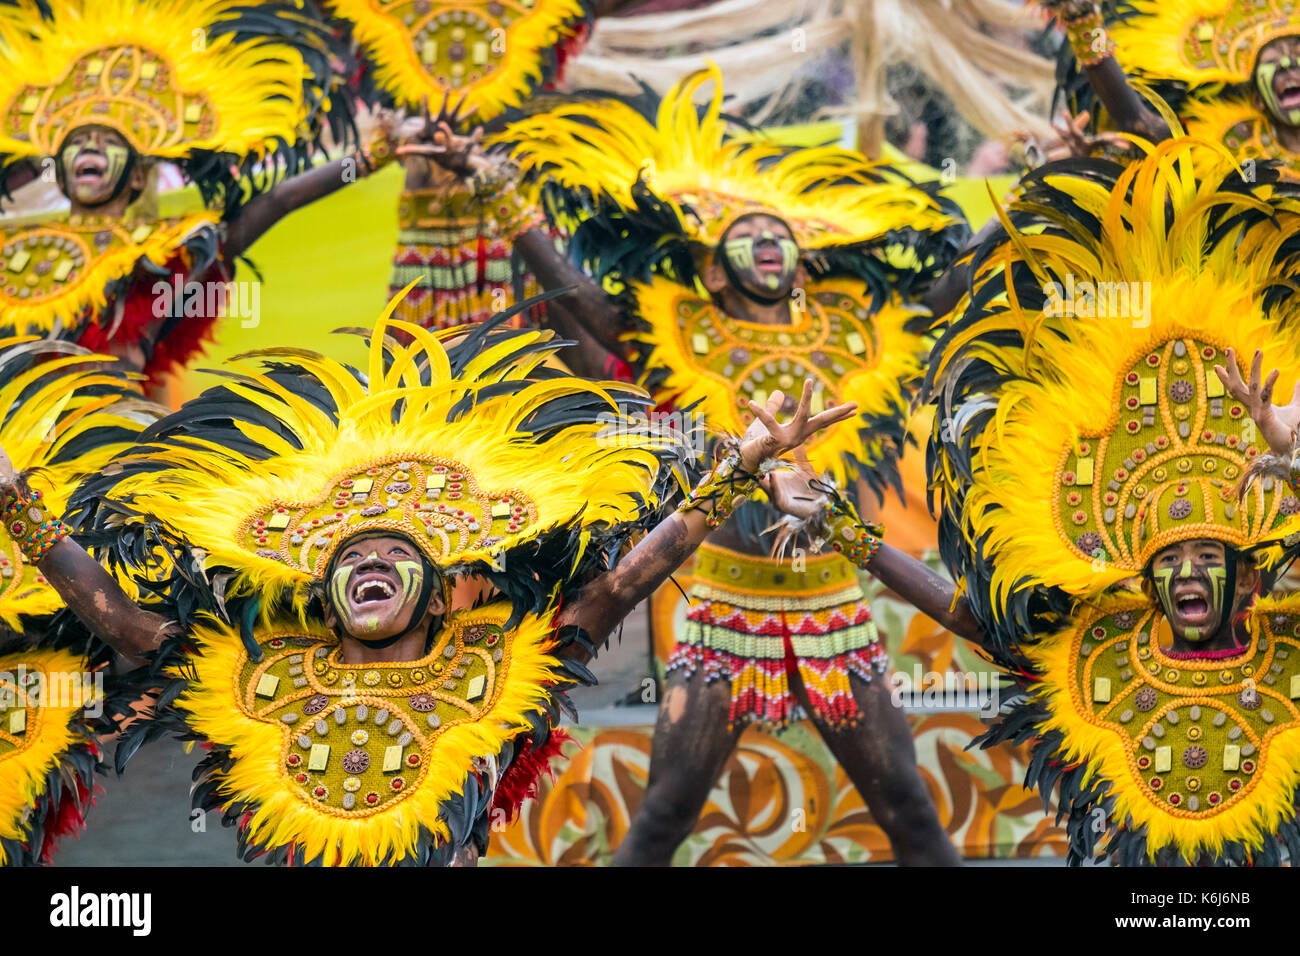 Ati warriors performing at Dinagyang Festival, Iloilo, Philippines - Stock Image